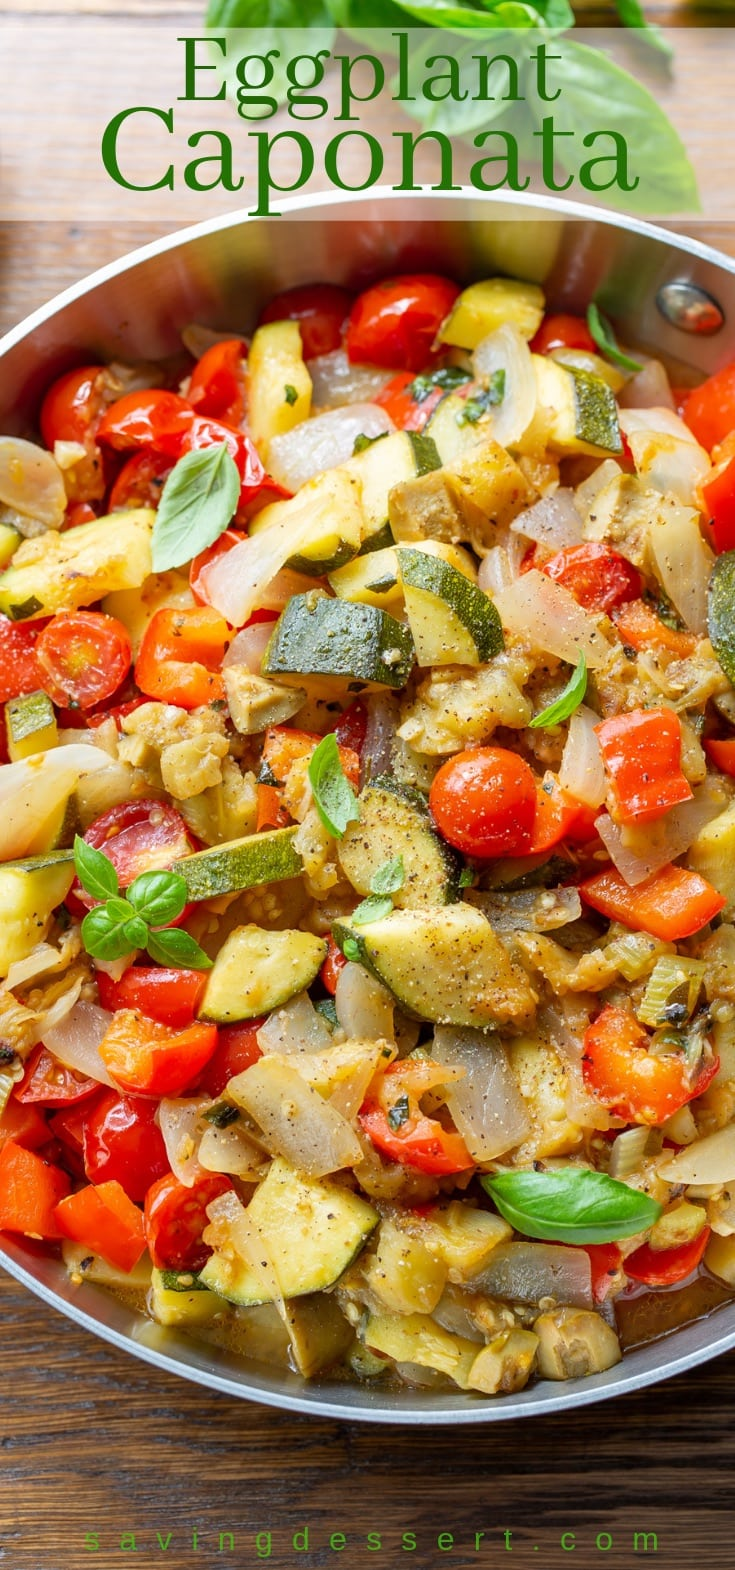 A skillet with eggplant caponata with zucchini, onions, peppers and fresh basil